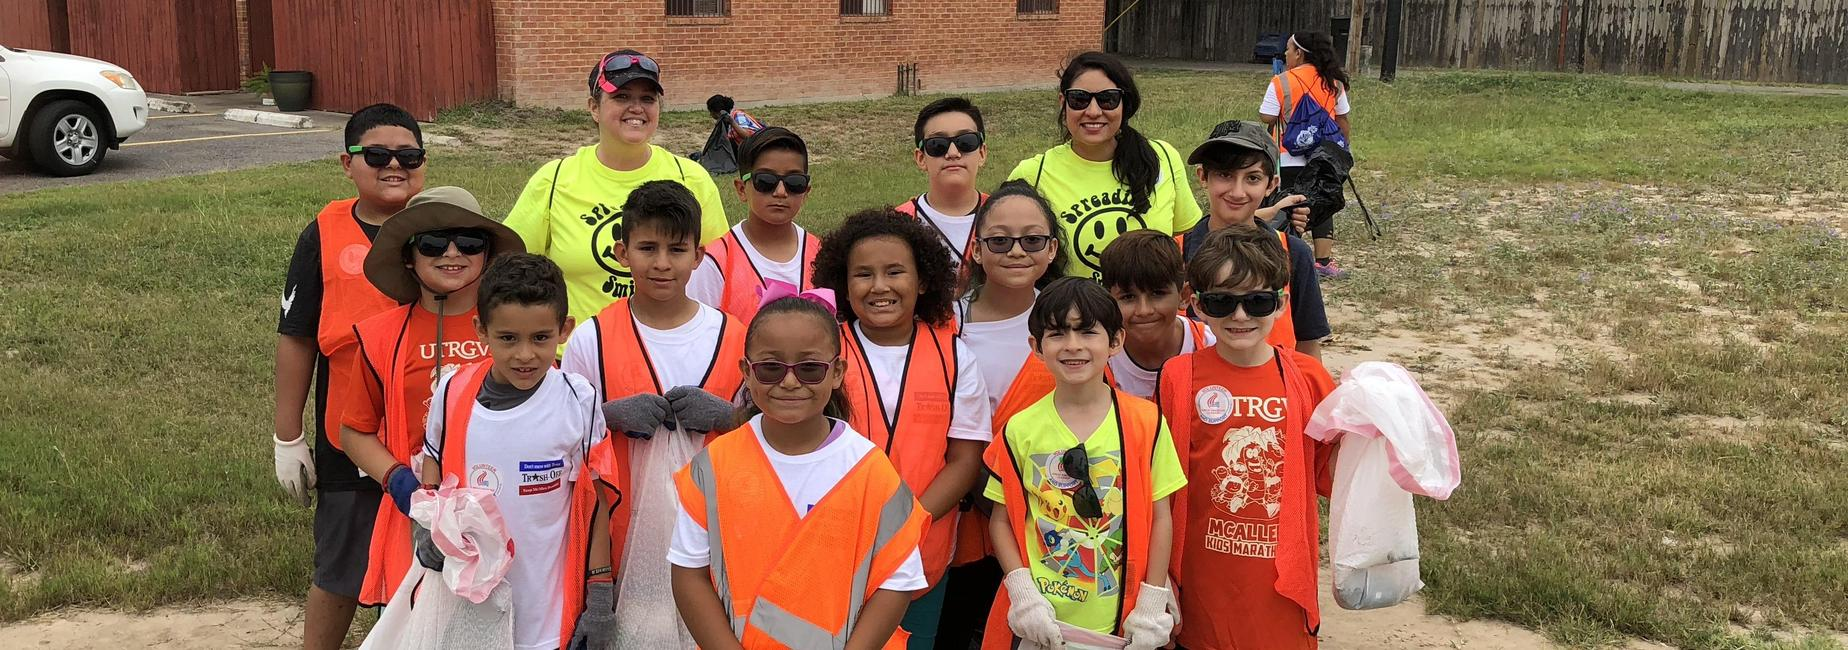 Spreading Smiles at the Great American Clean-up